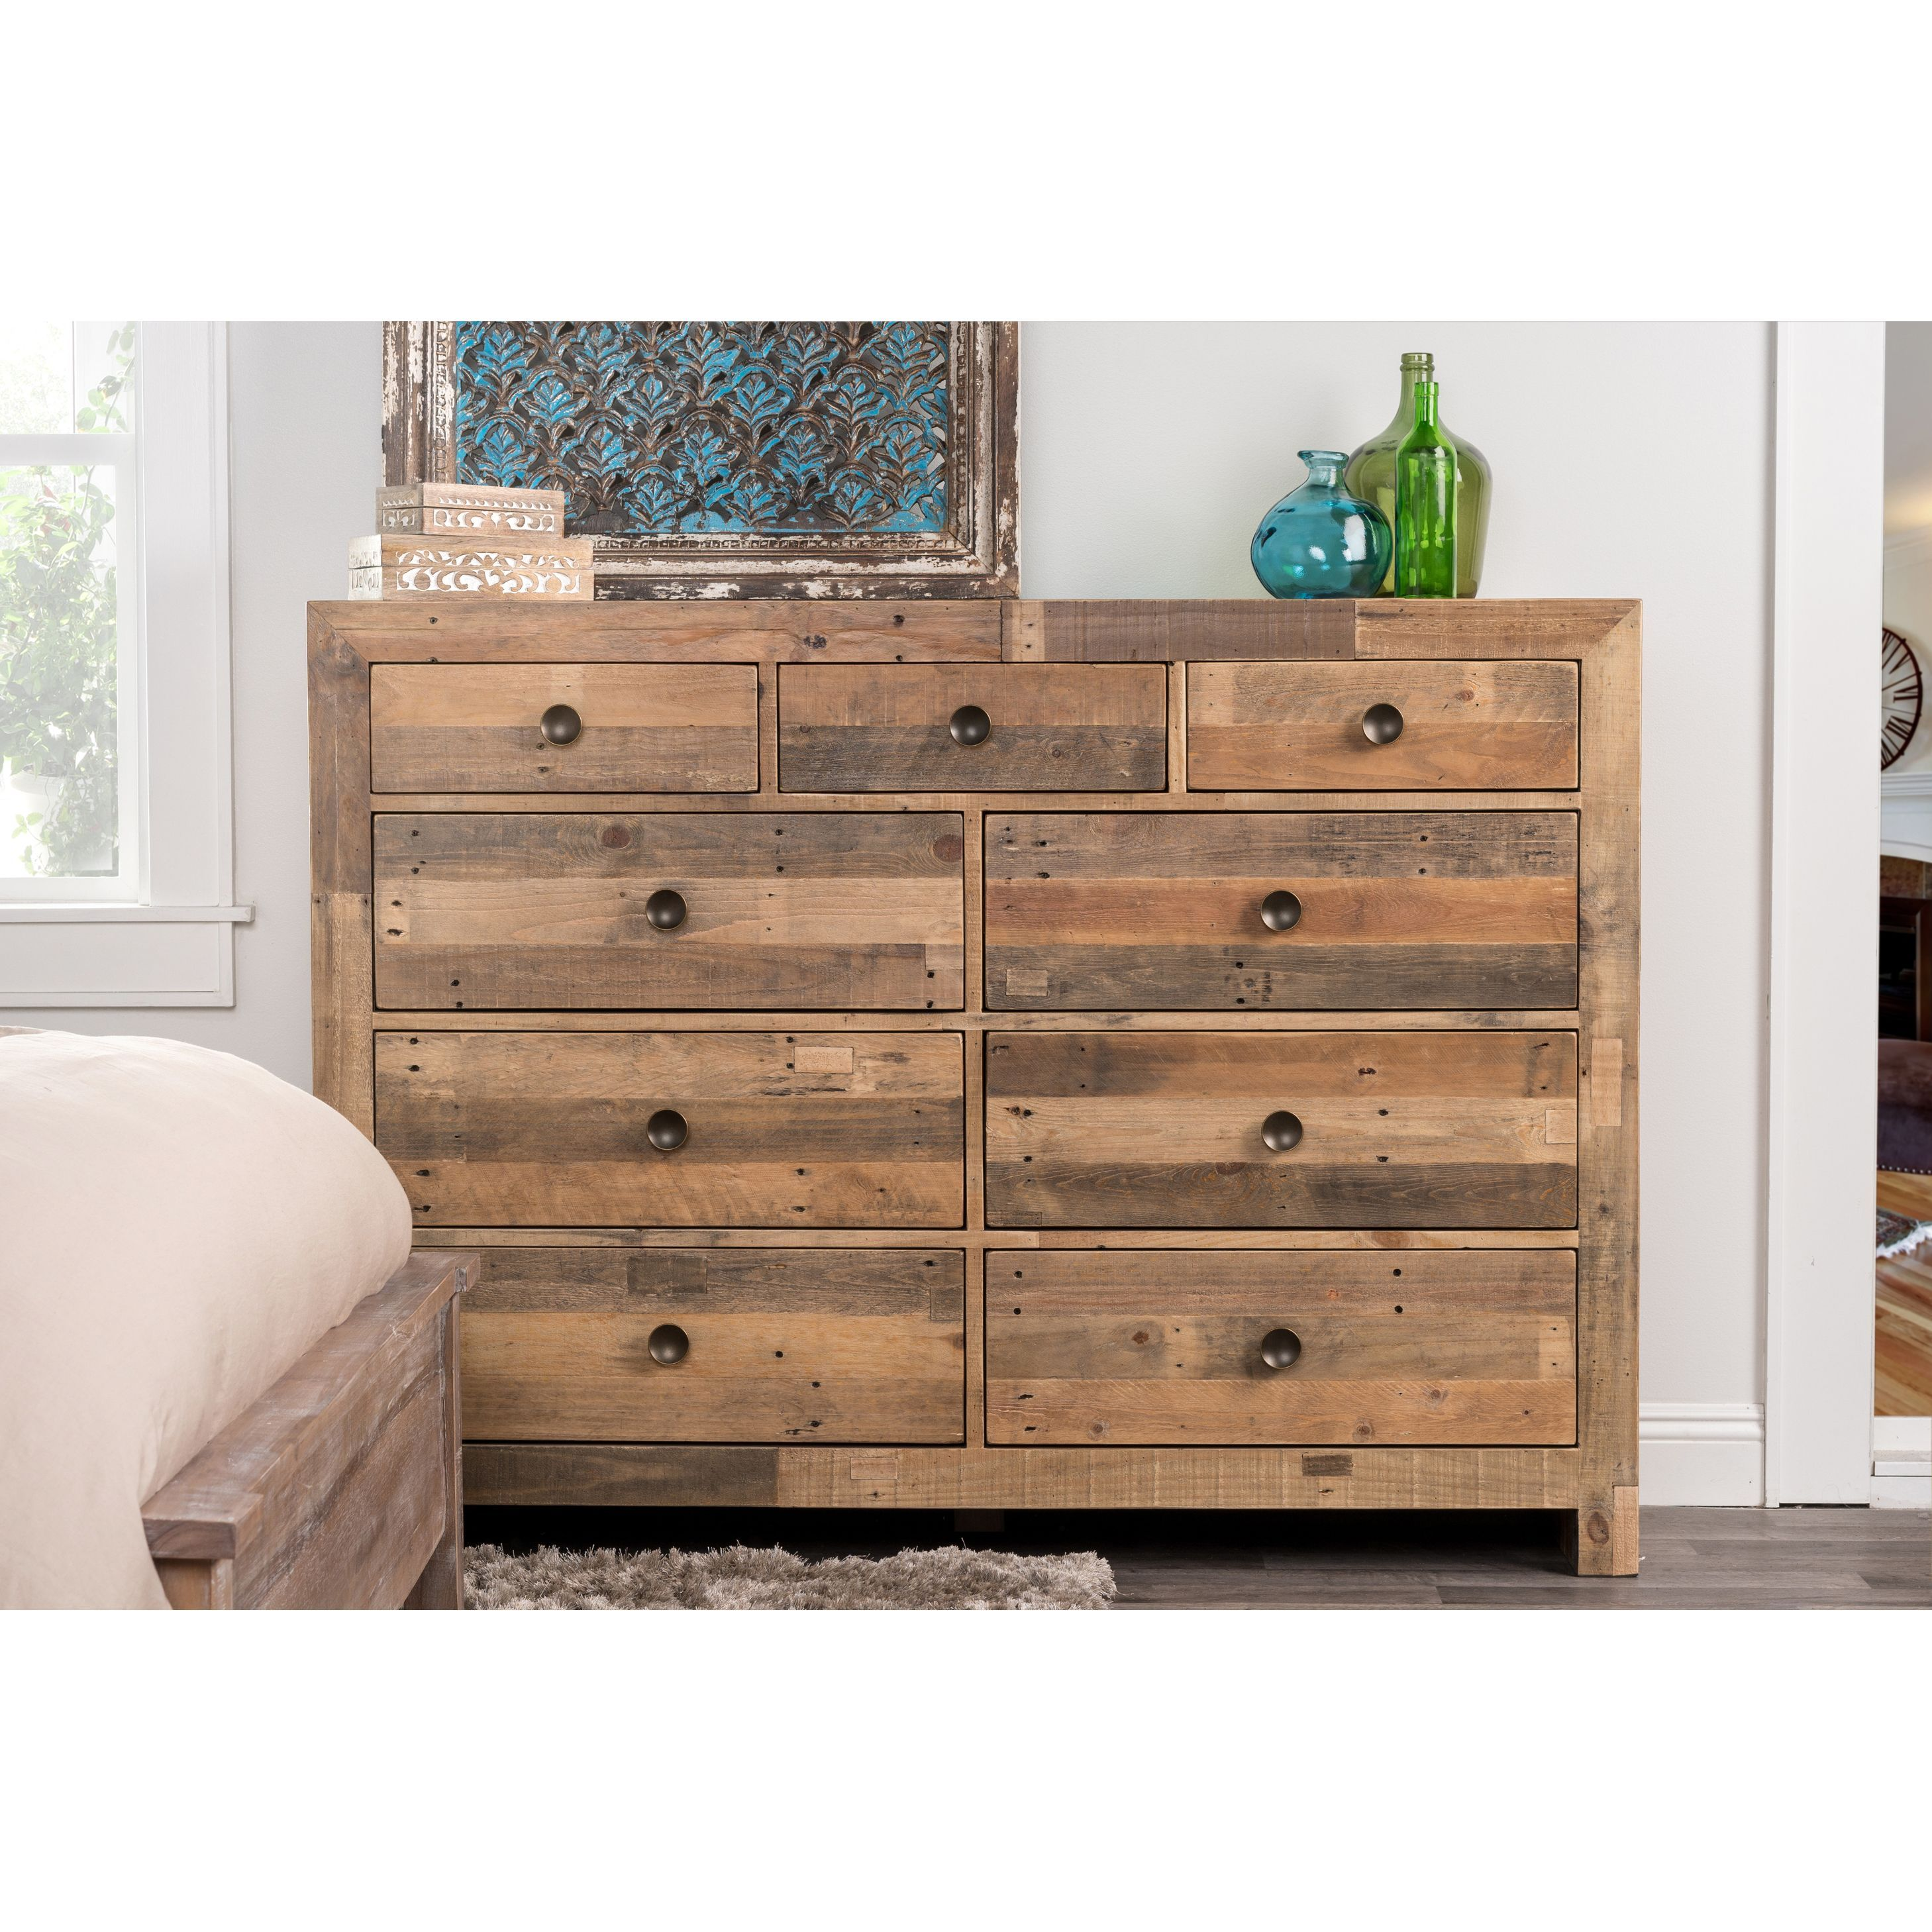 kosas home hand crafted oscar natural recovered shipping pallets   - help the planet breathe easier with this ecofriendly dresser constructedby hand from recycled